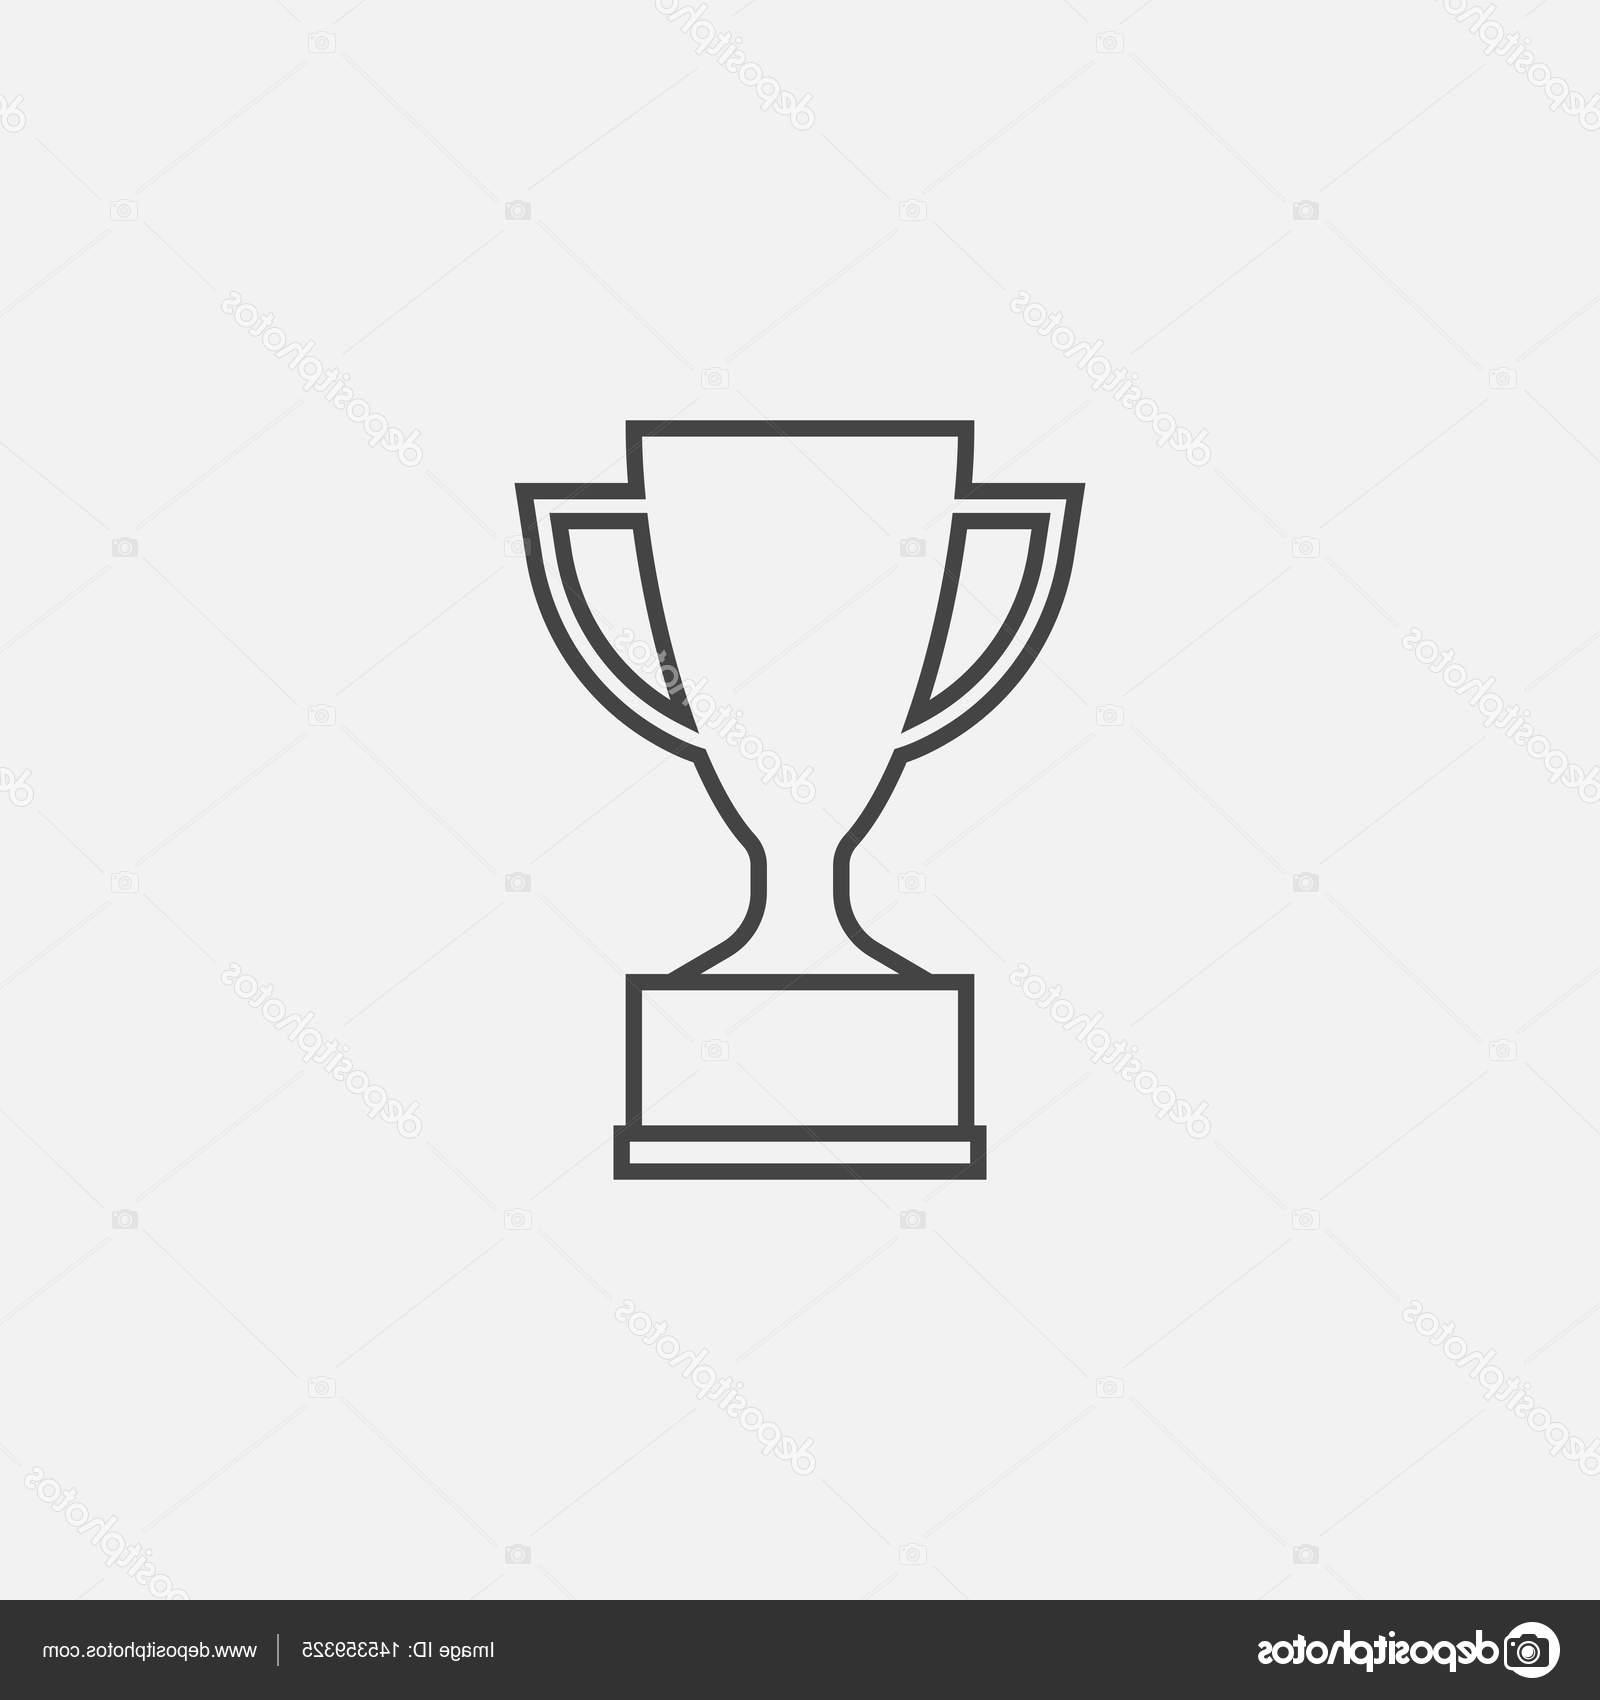 1600x1700 Best Free Simple Trophy Vector Pictures Free Vector Art, Images